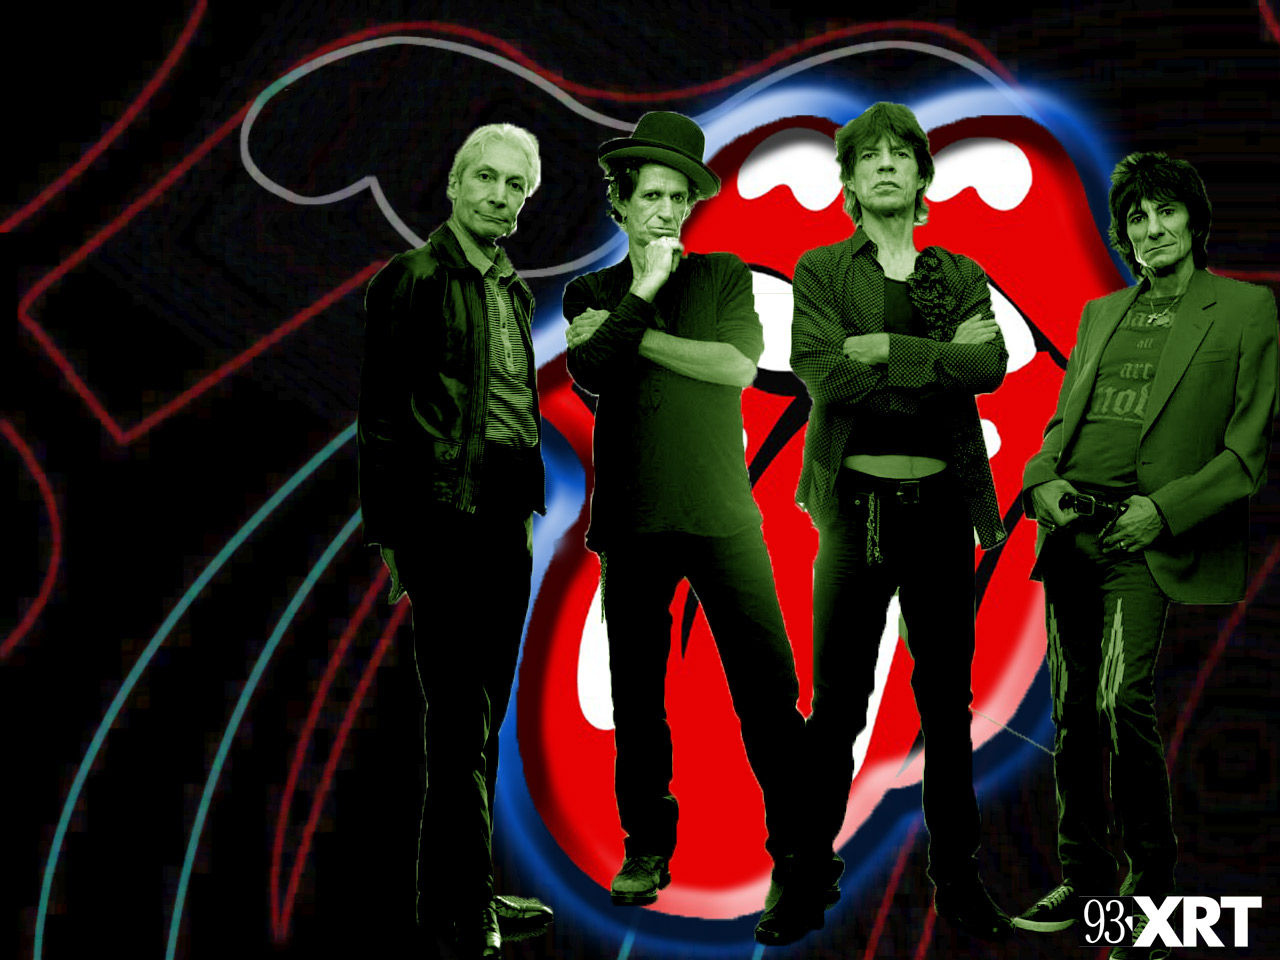 The Rolling Stones HD images The Rolling Stones wallpapers 1280x960